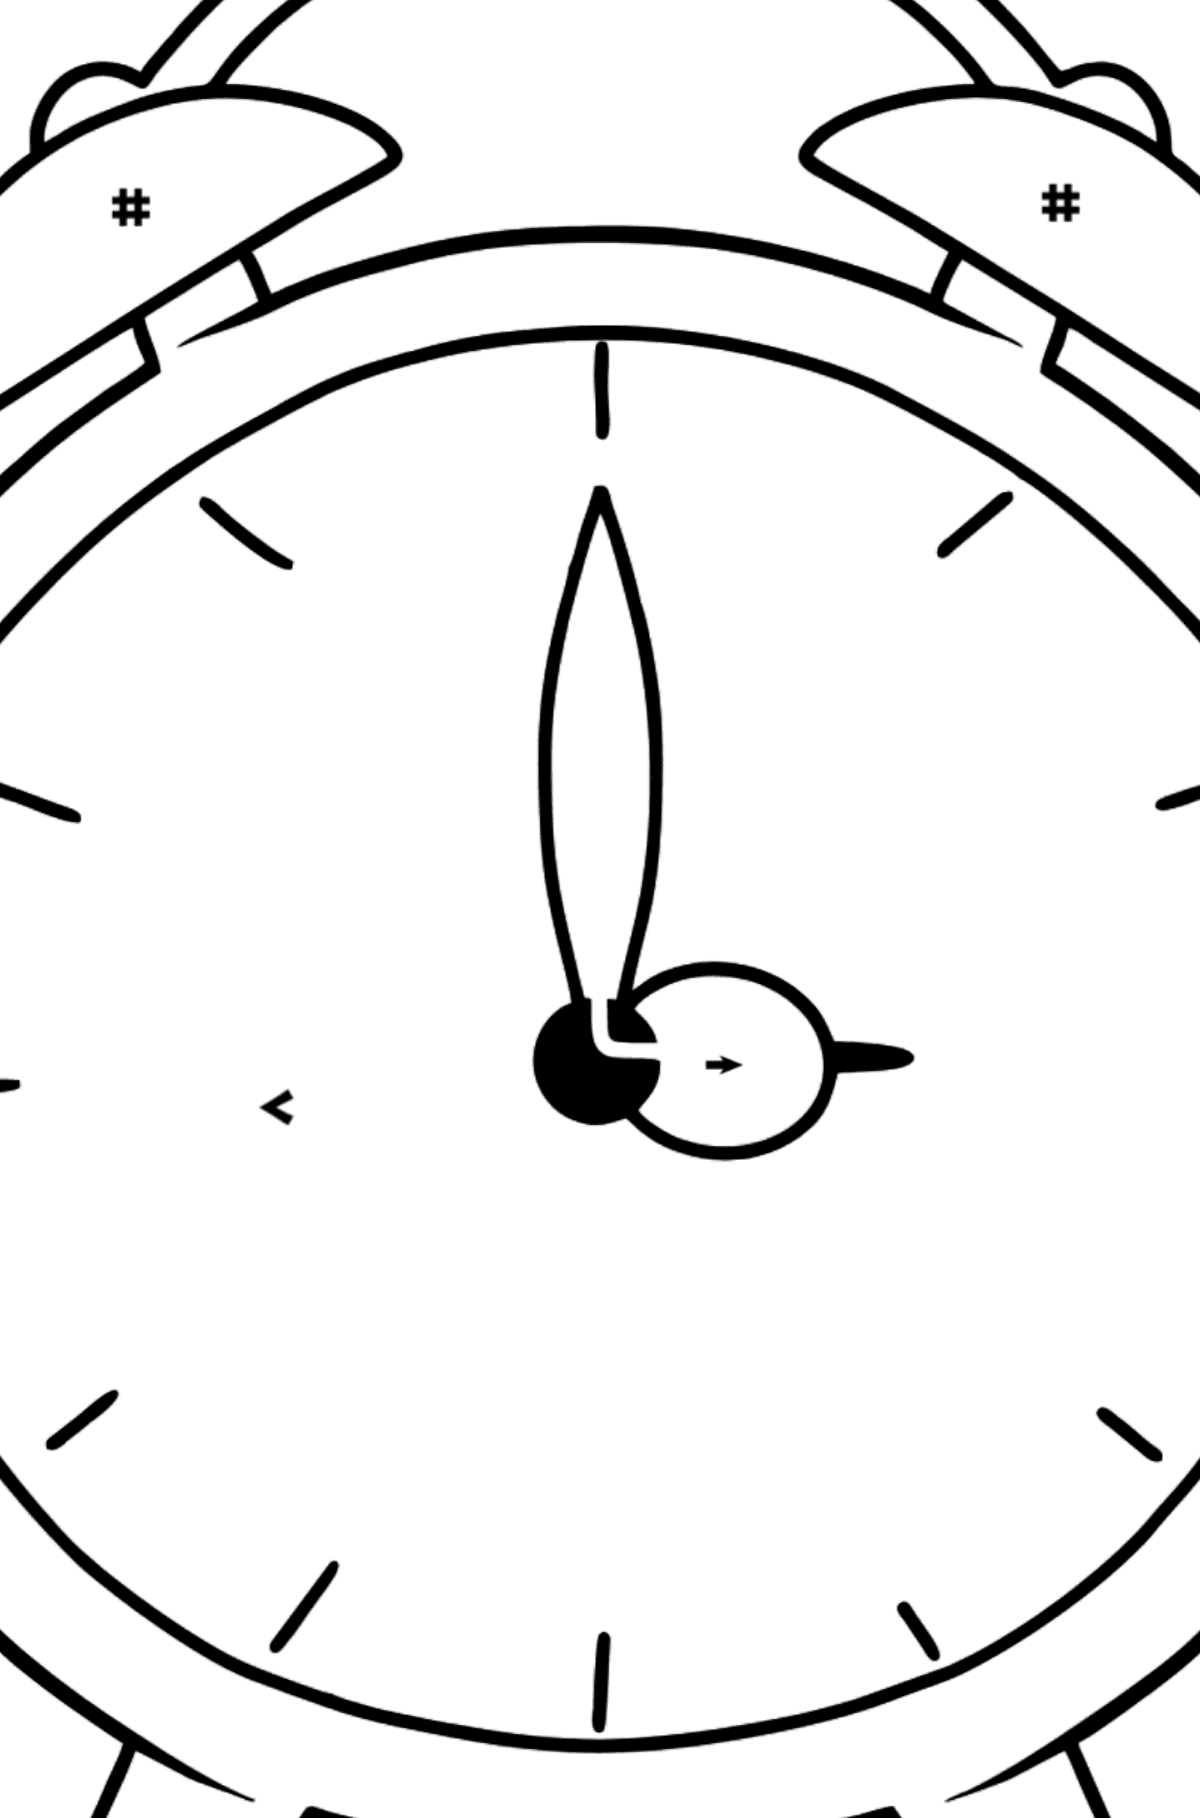 Alarm Clock coloring page - Coloring by Symbols for Kids